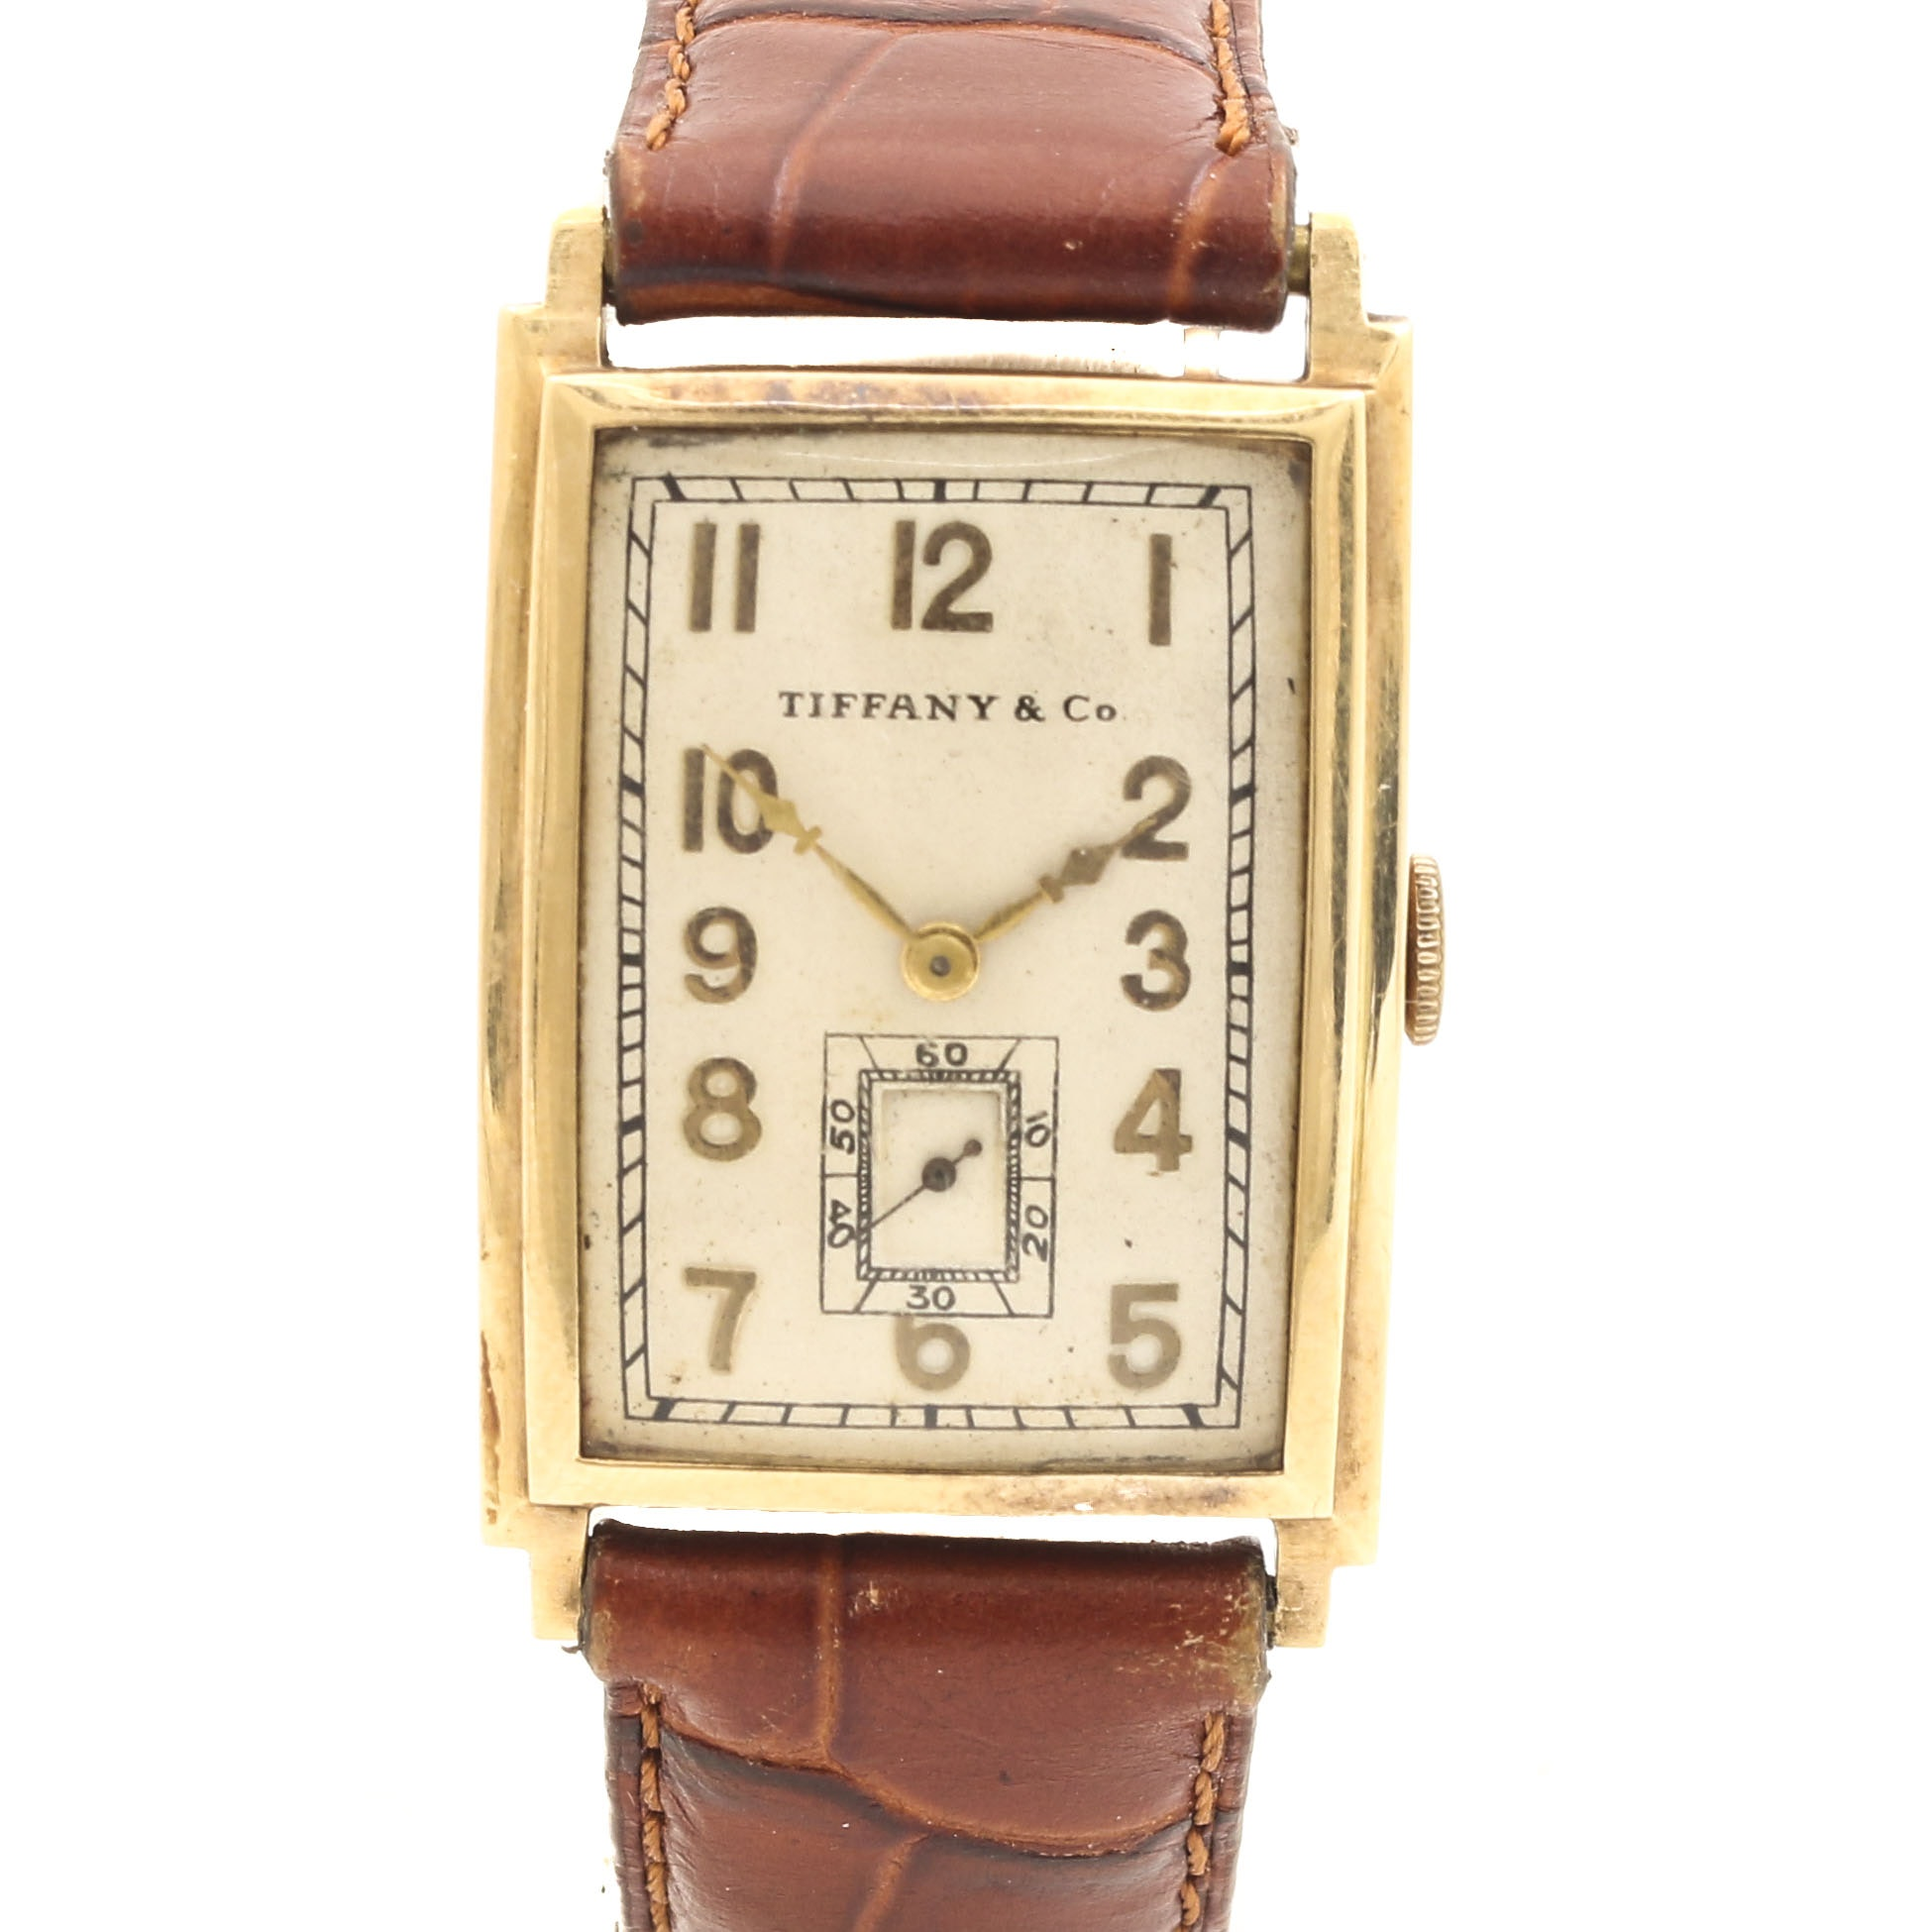 Tiffany & Co. by Longines 14K Yellow Gold Wristwatch